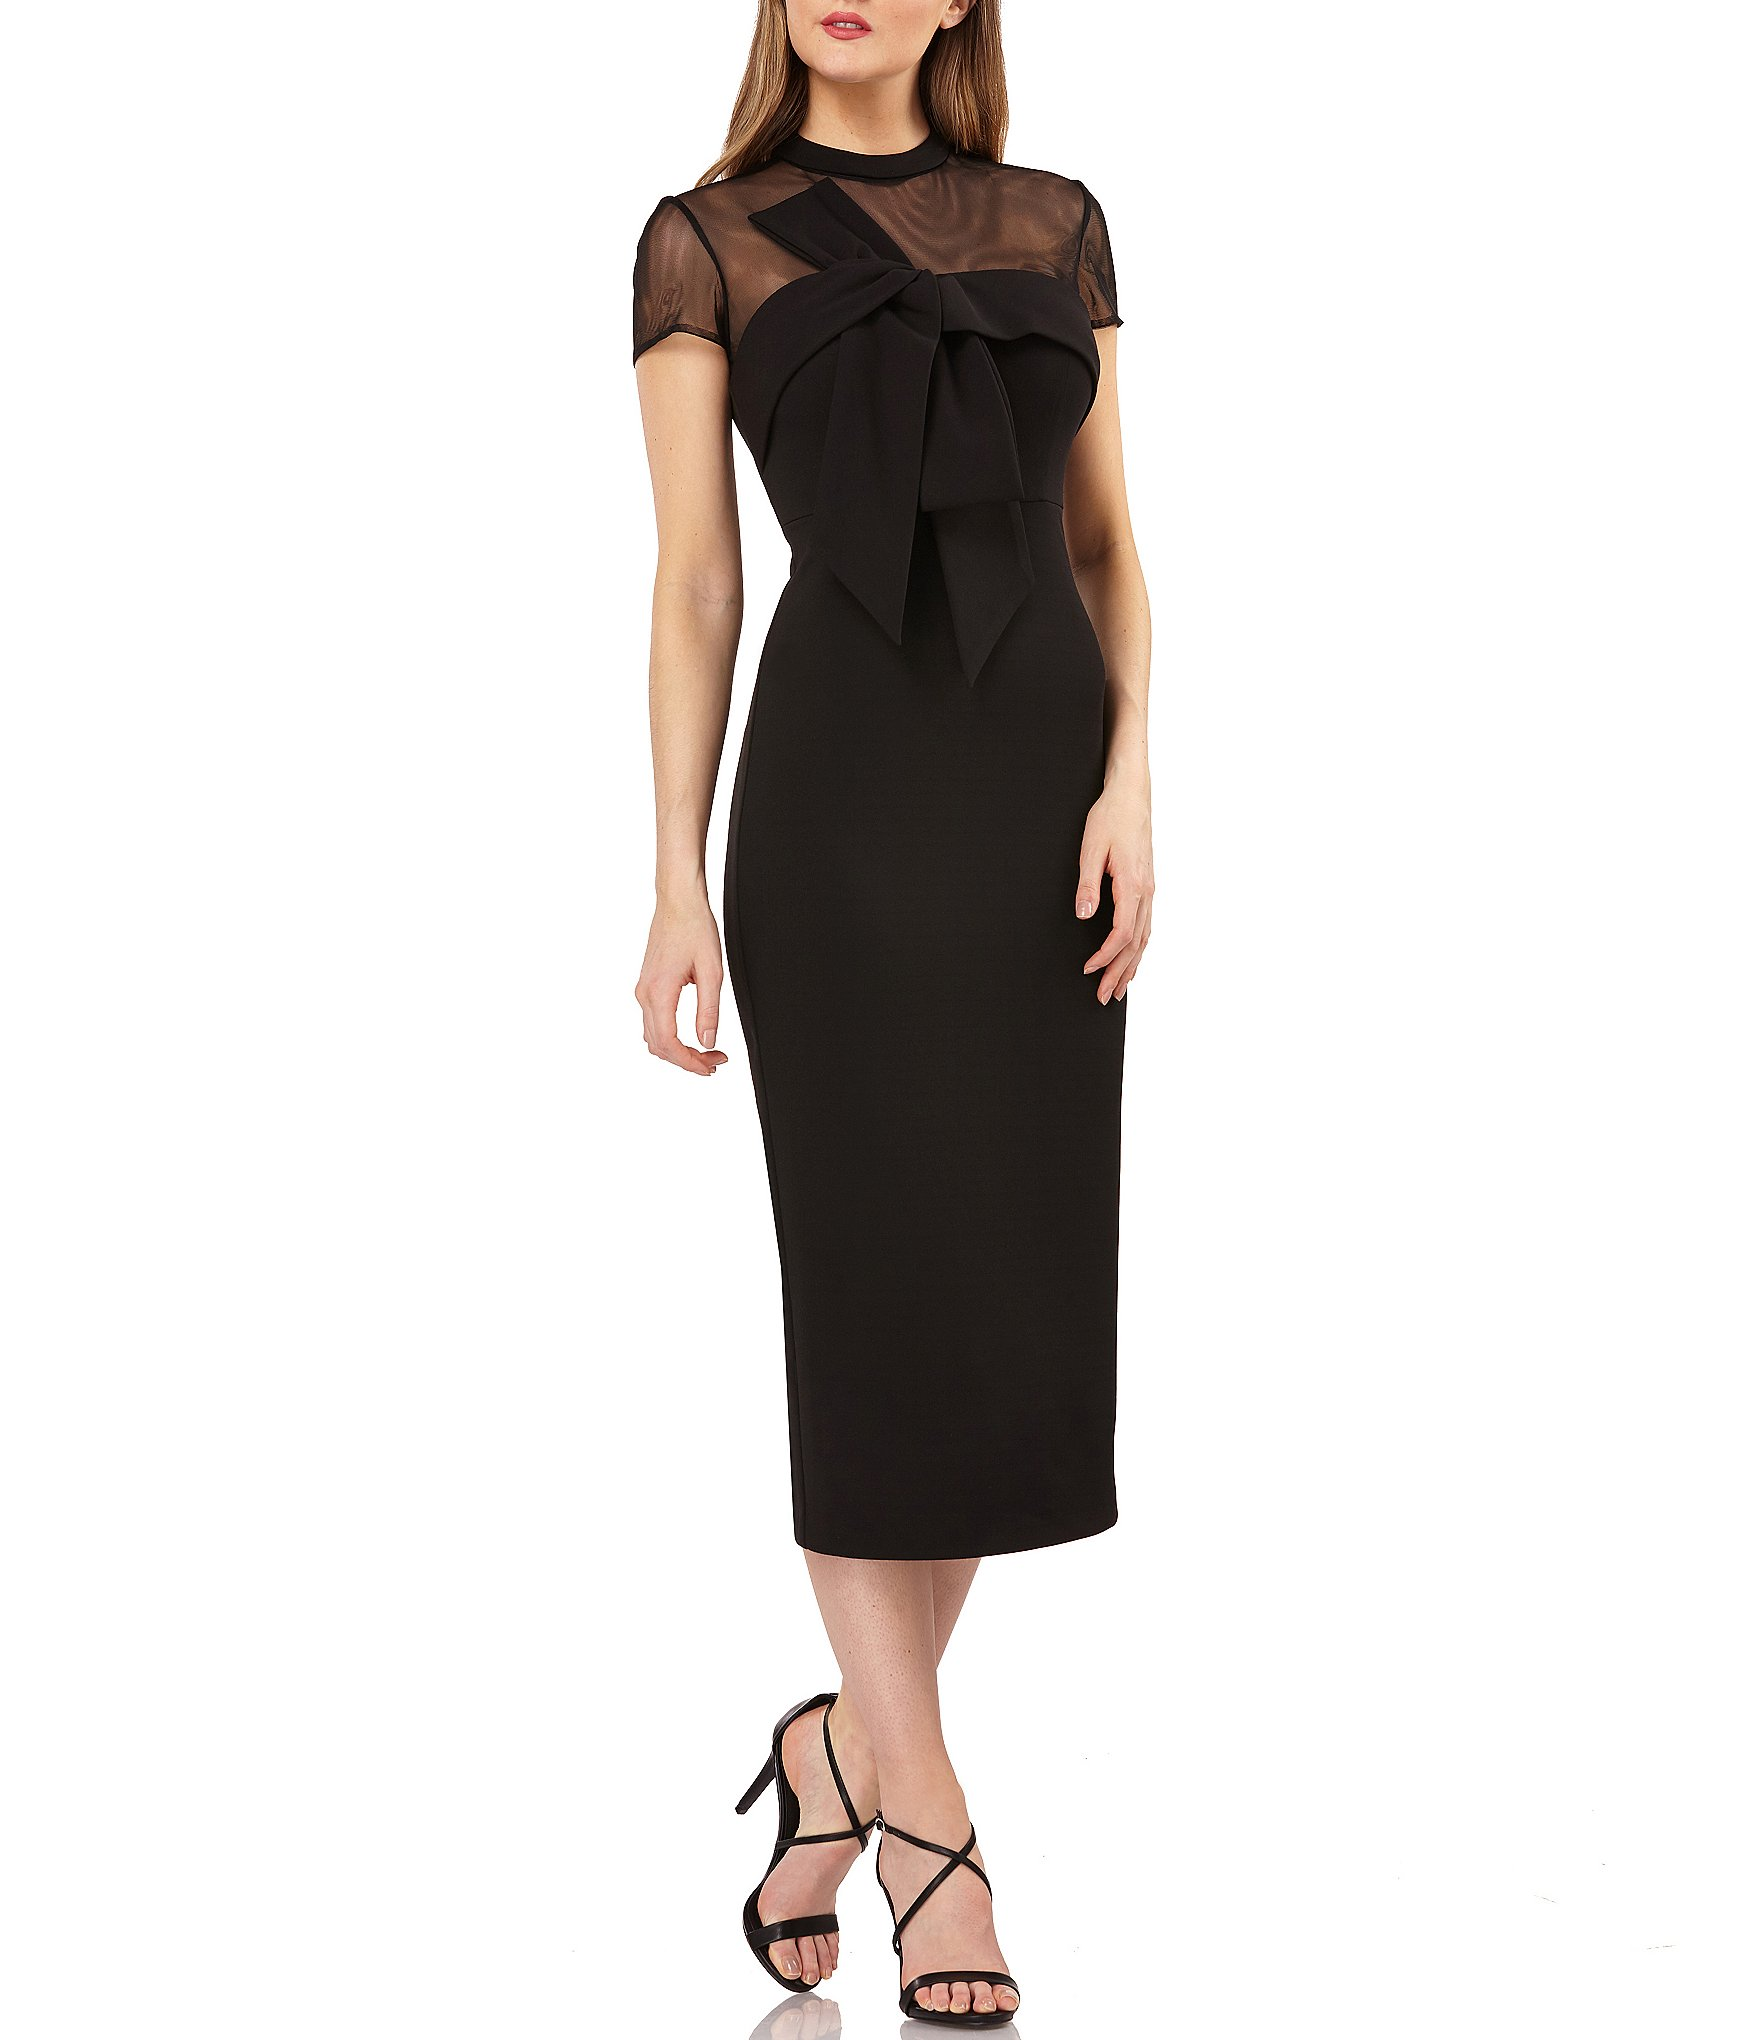 Black Women S Cocktail Party Dresses Dillard S